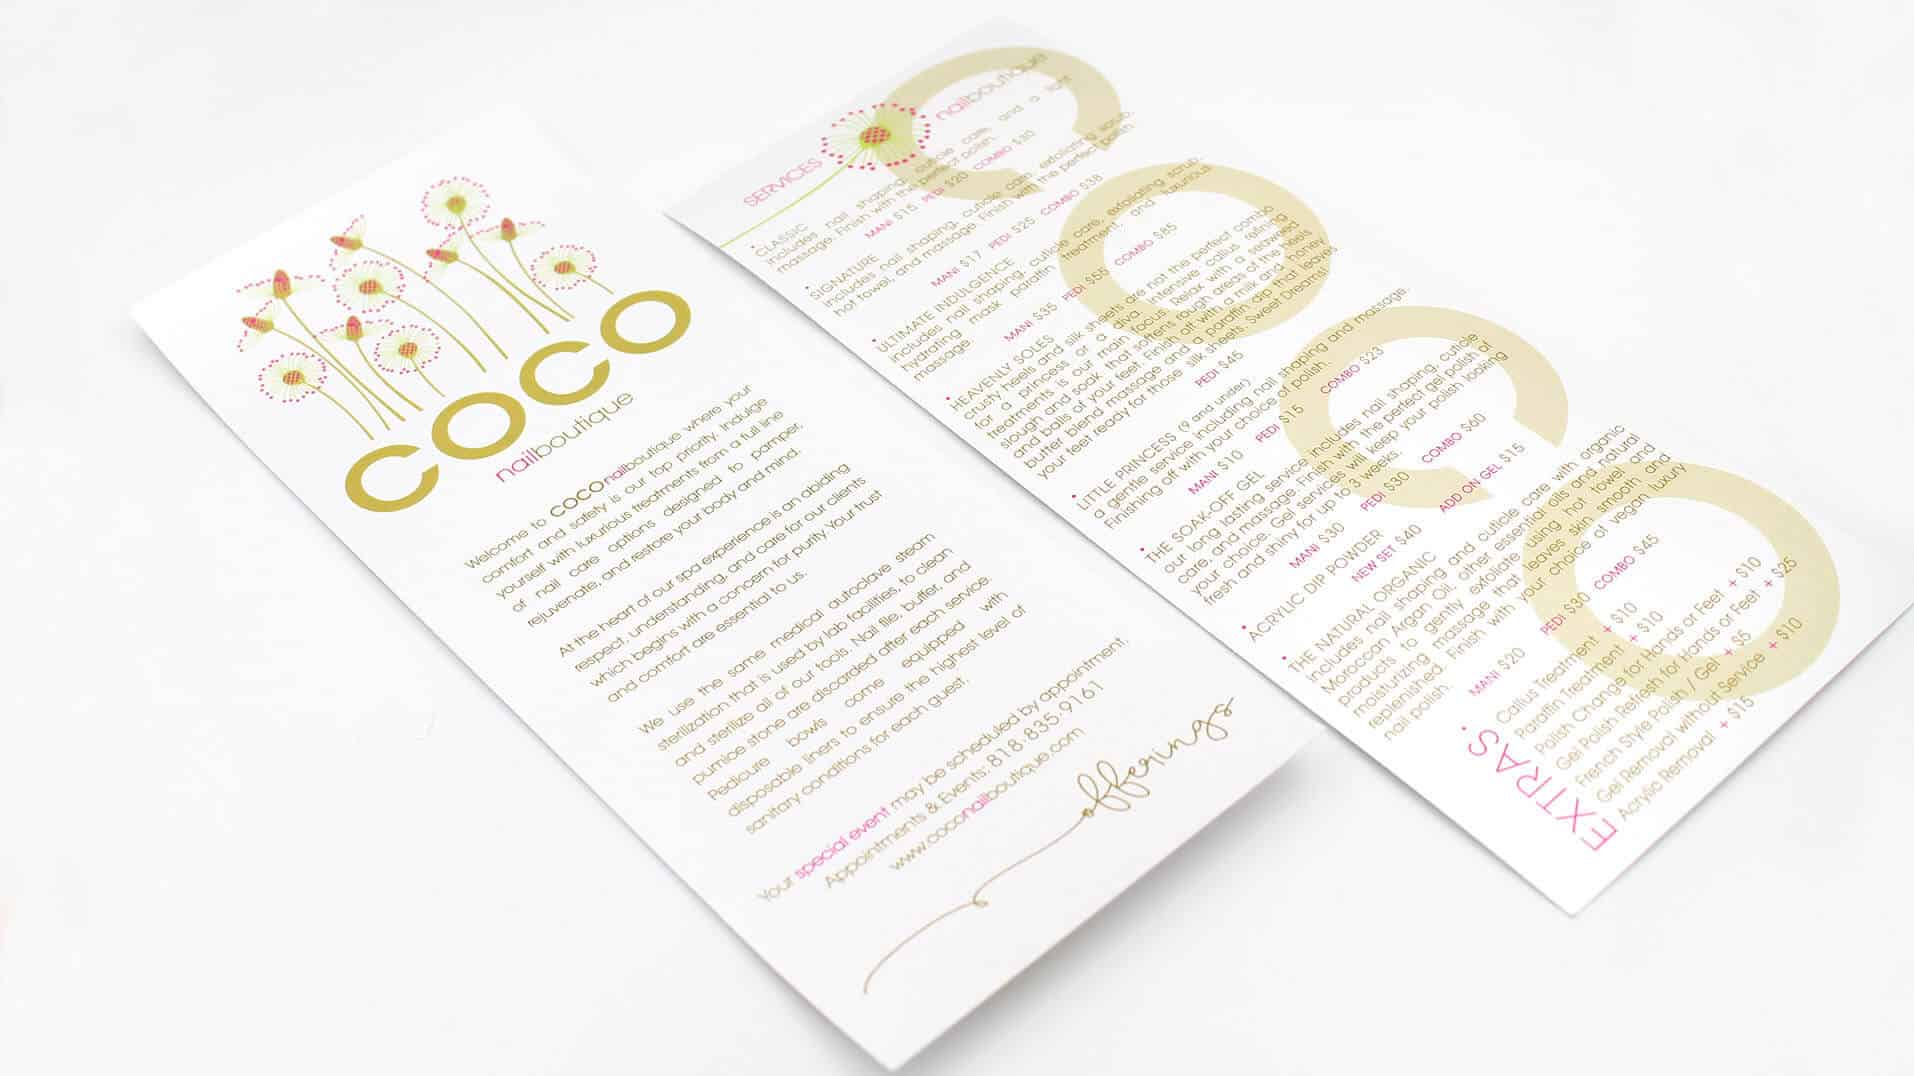 Photo of Coco nailboutique services menu designed by DIG53.